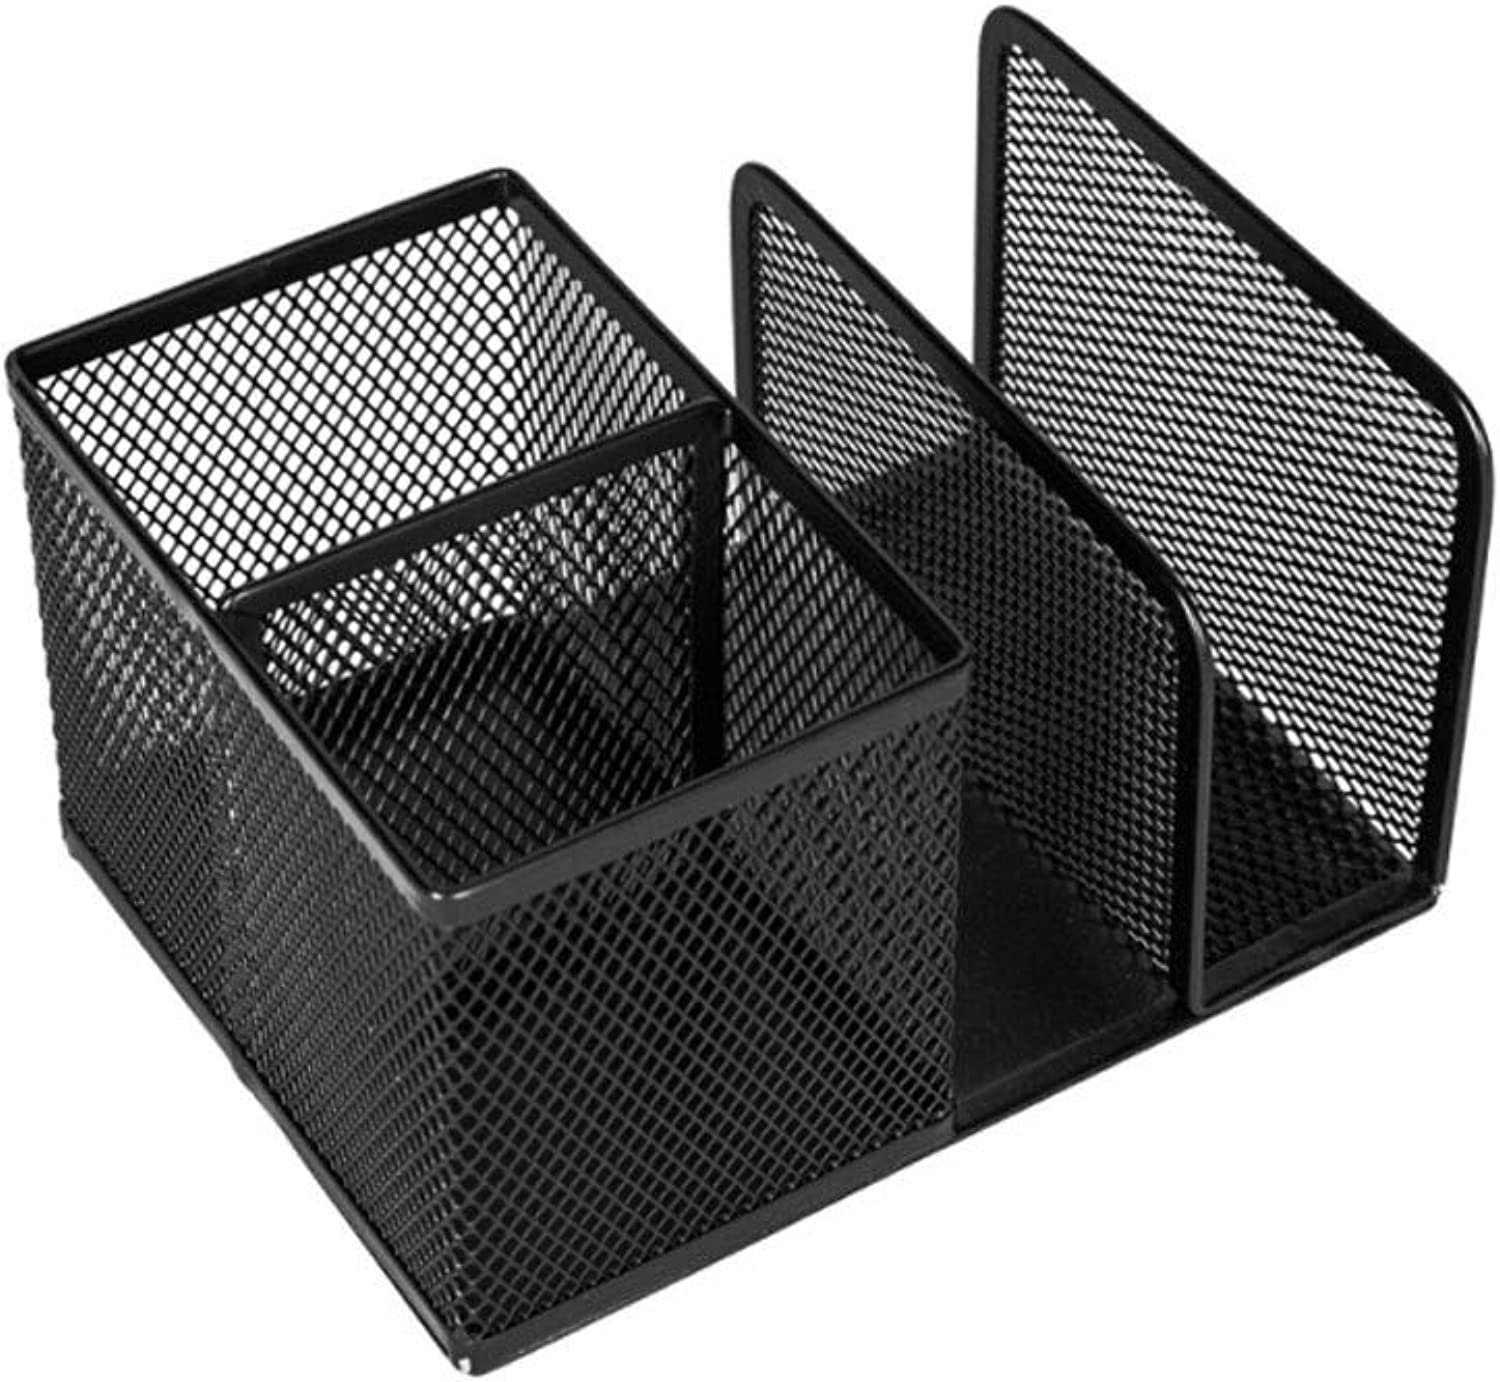 PLDDY Crafts Book Stand + Pen Holder Metal Grid Creative Desktop Storage Stationery Home Office Desktop Organizer,4Compartment with,School and Home Use, Black